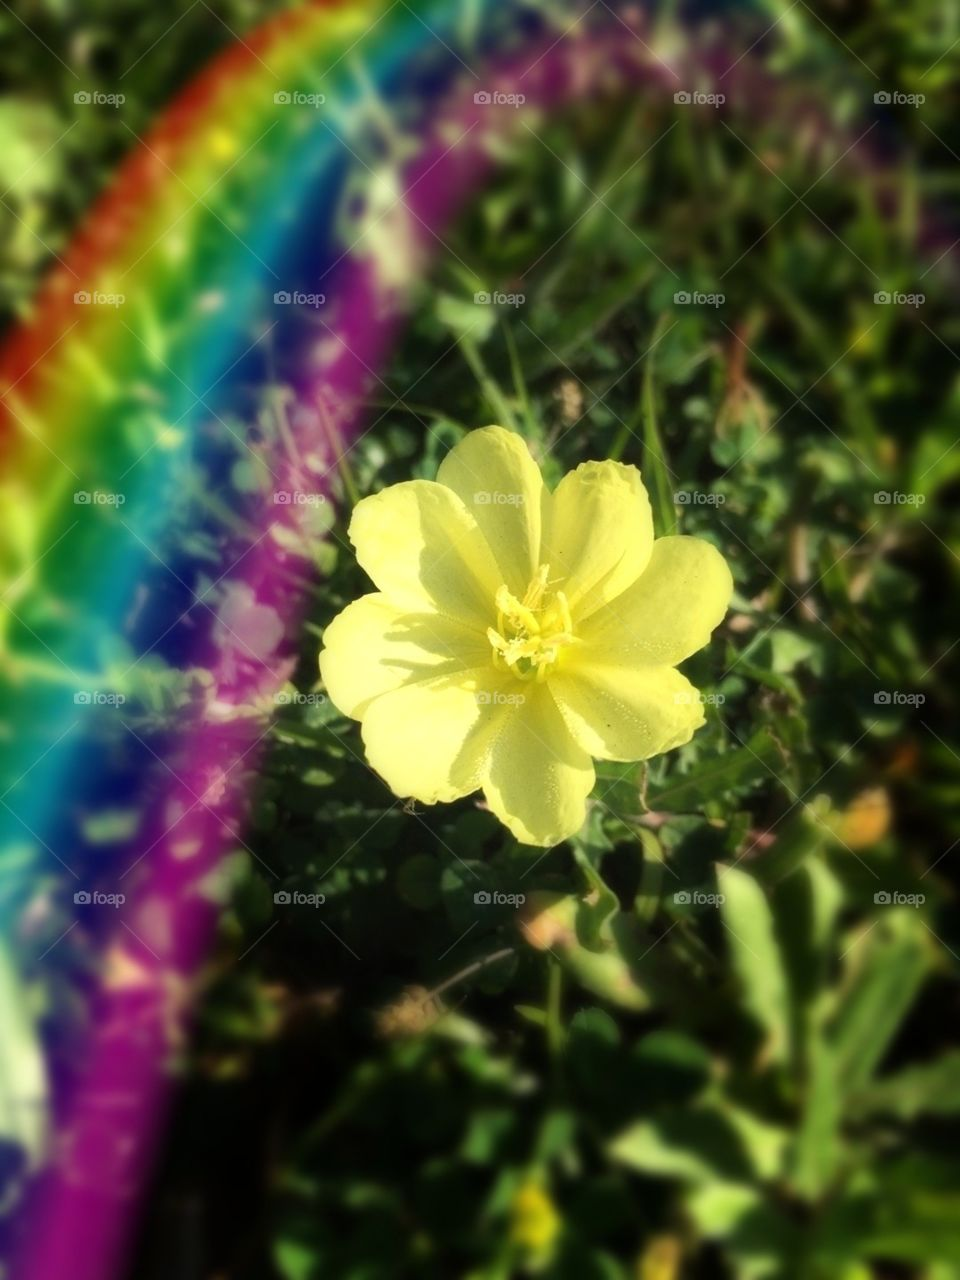 Color love with a yellow buttercup and rainbow